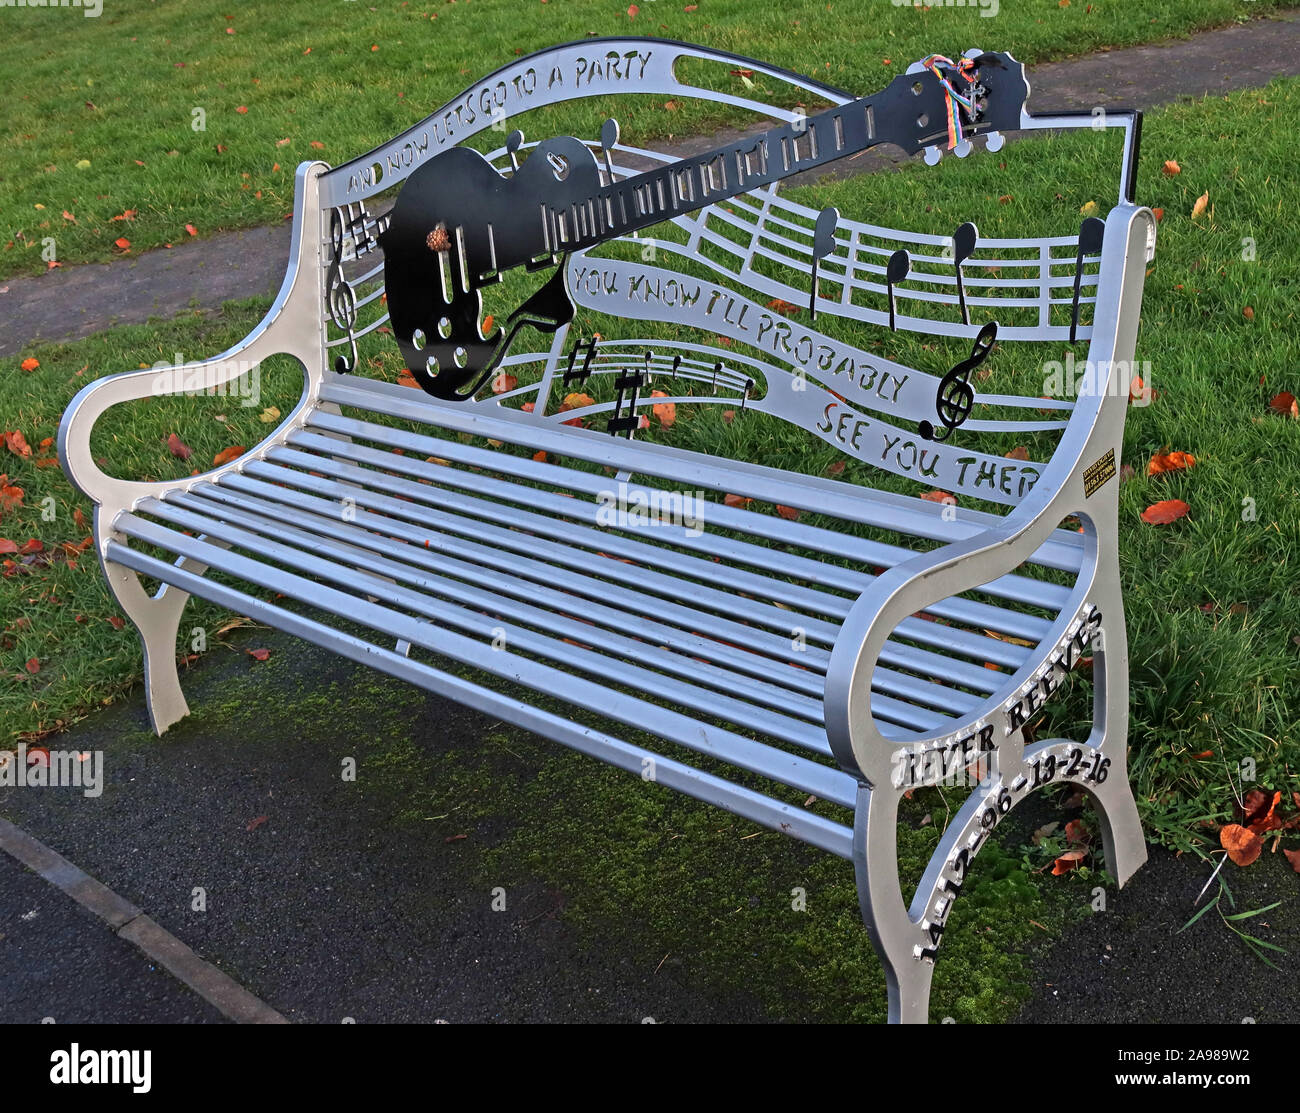 "Viola Beach Silver Bench,Grappenhall Heys, Warrington, Cheshire, North West England, UK - Memorial Seat, 13/02/2016 - ""And Now Lets Go To A Party"" Stock Photo"